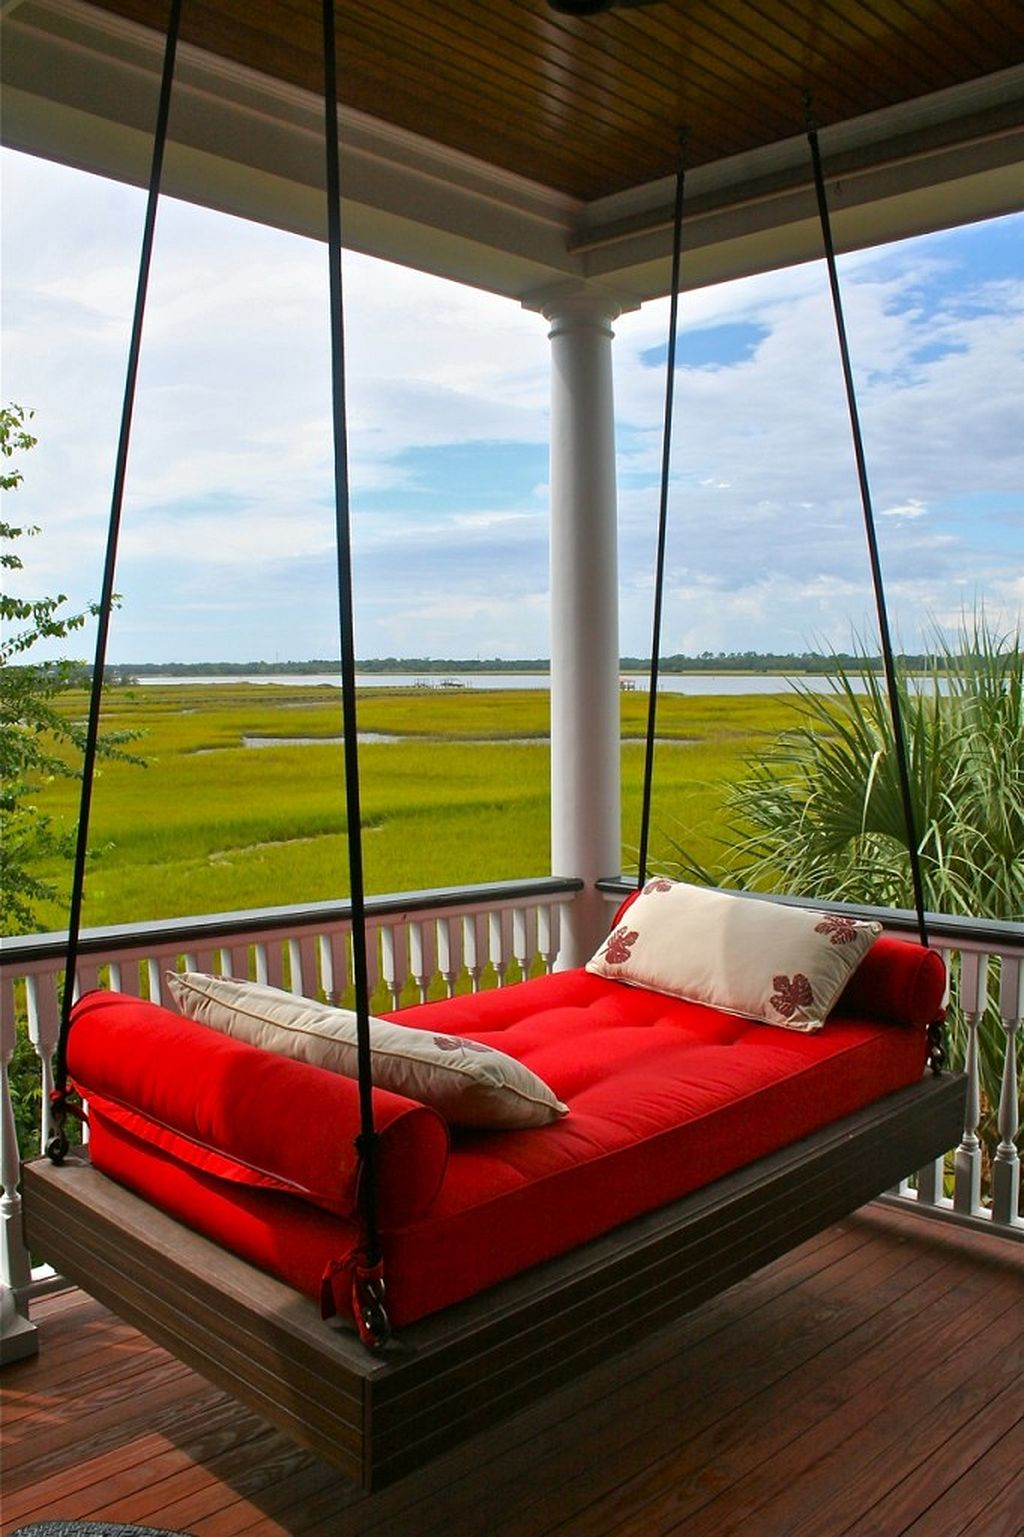 Outdoor Living Ideas - Outdoor Porch Swing Bed